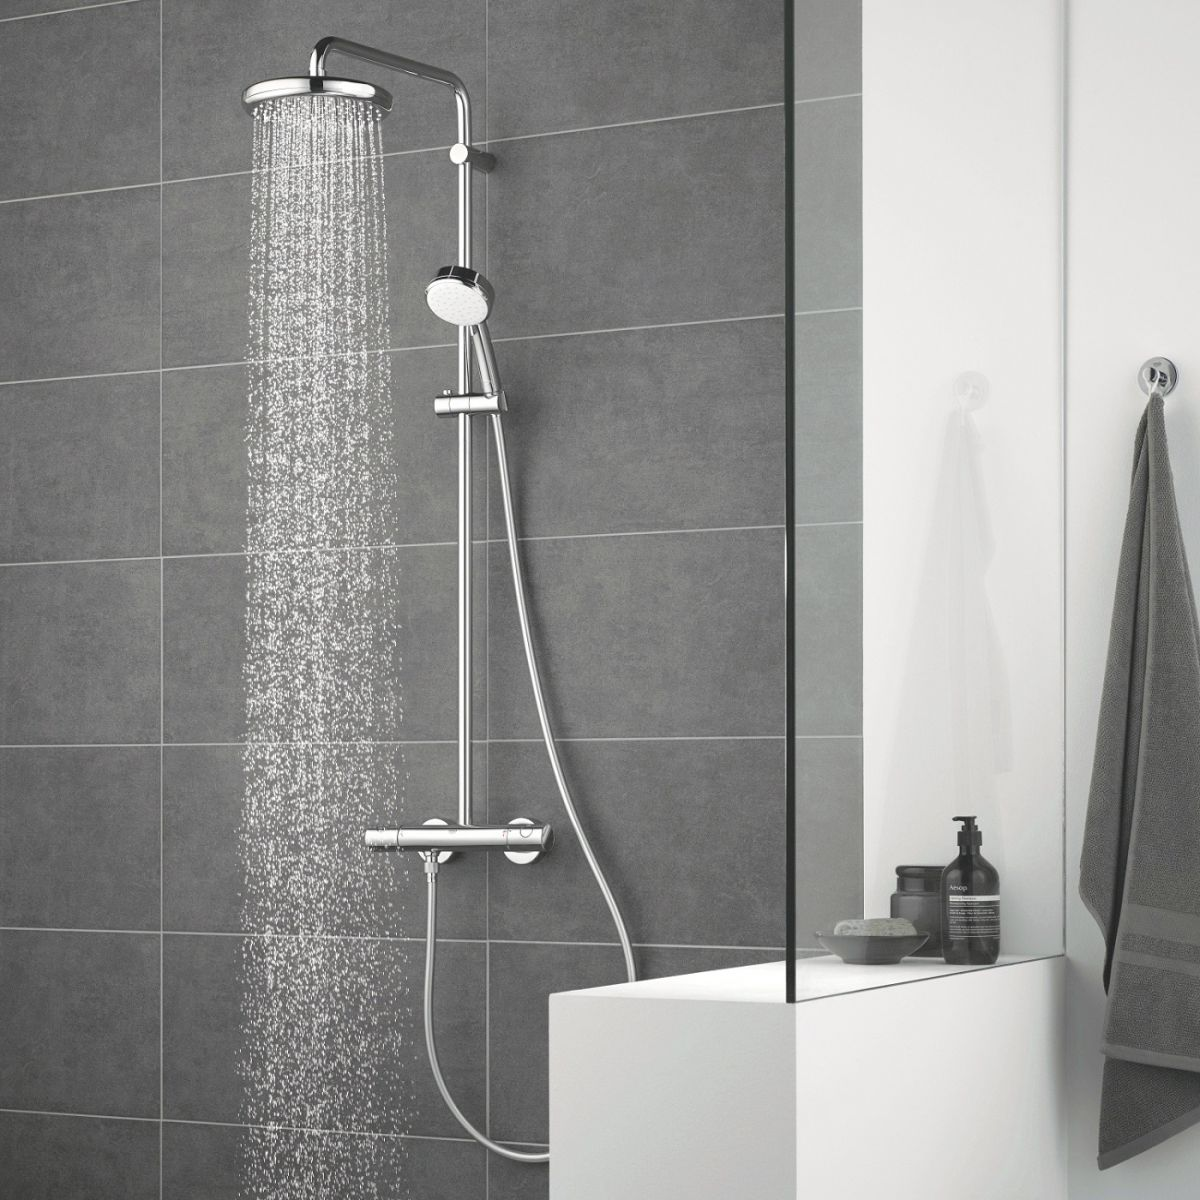 Grohe Tempesta Cosmopolitan 210 Shower Mixer with Drench Head and Handshower